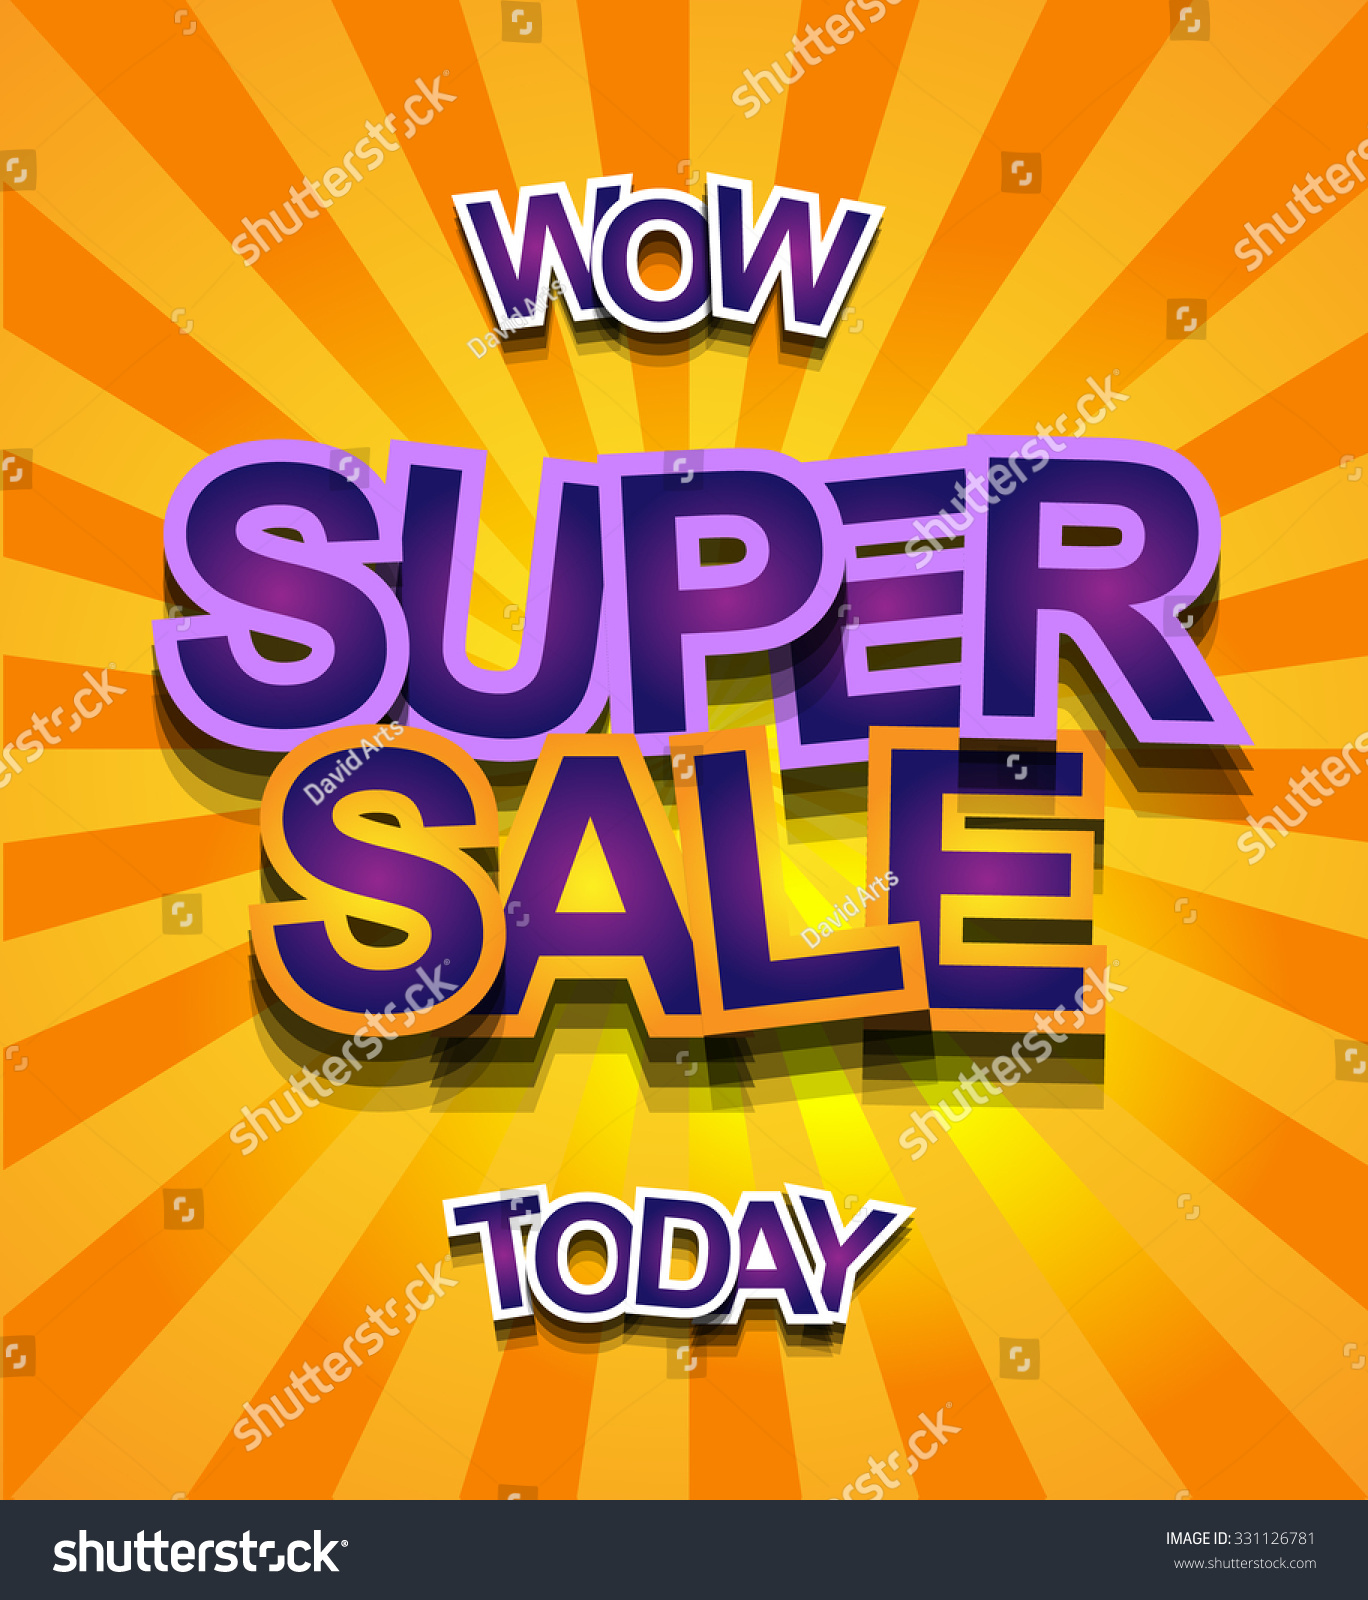 super today background your promotional stock vector super today background for your promotional posters advertising shopping flyers discount banners